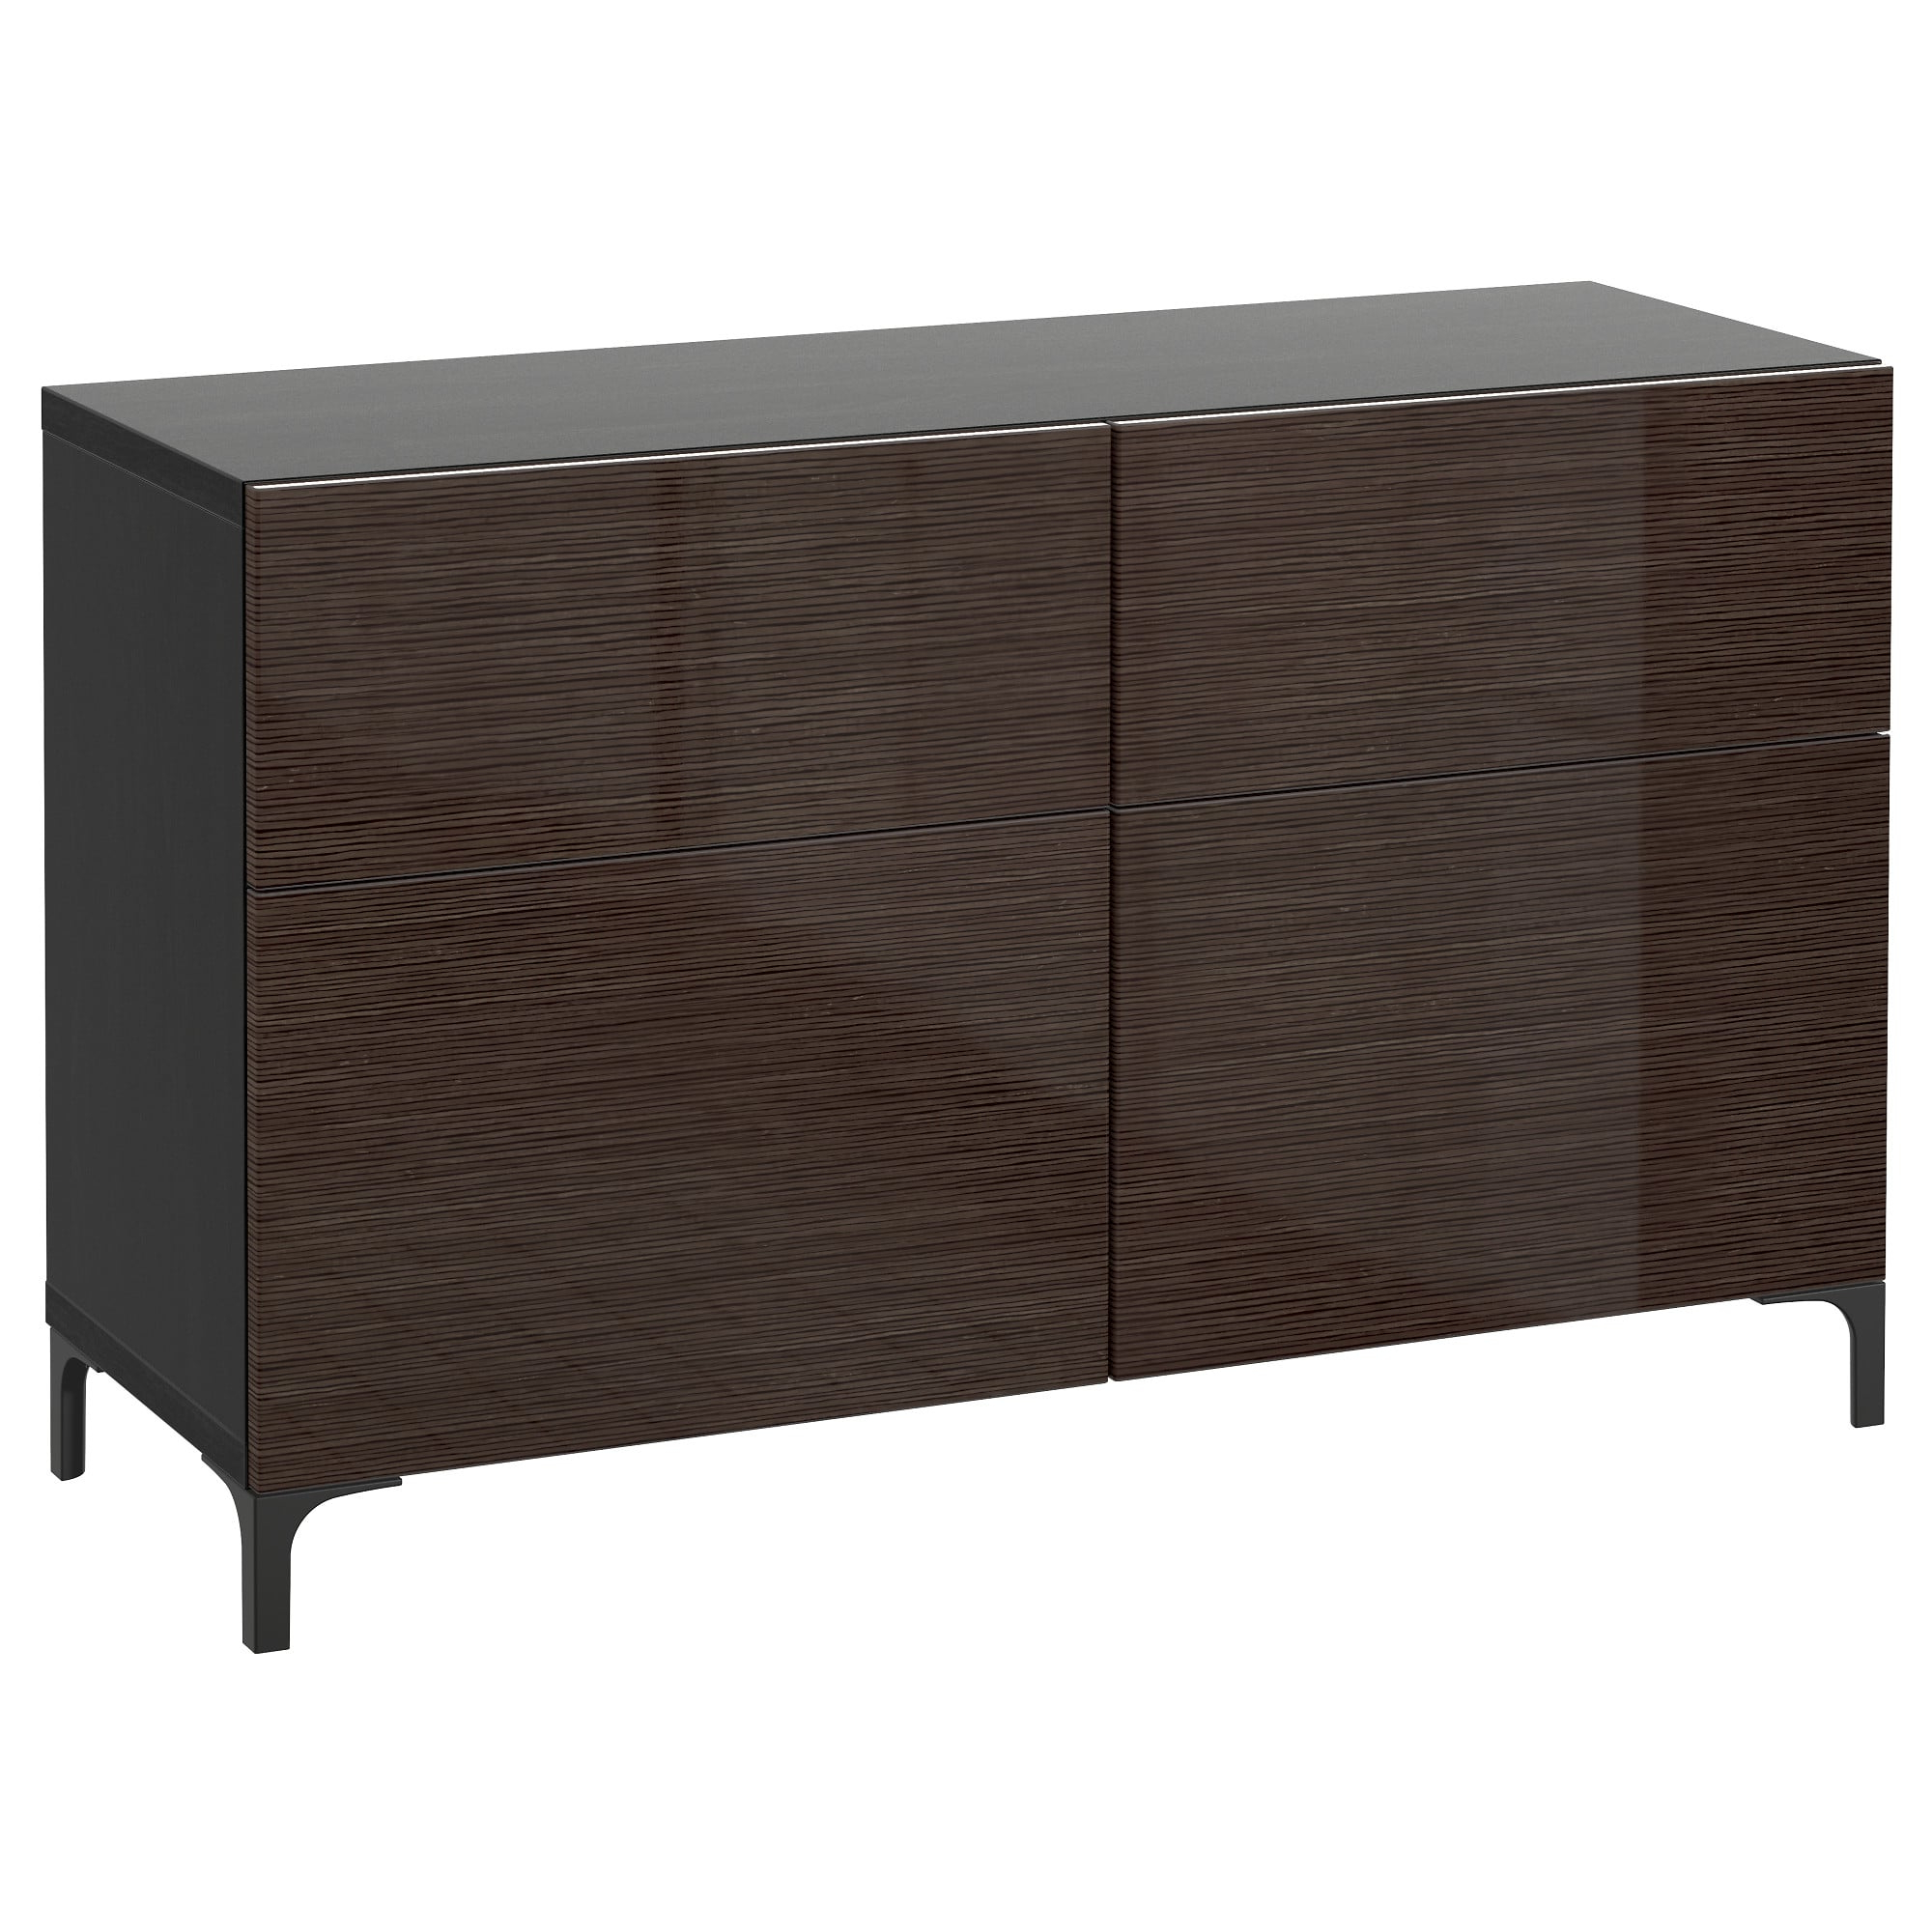 Newest 4 Door Wood Squares Sideboards With Occasional Tables & Hall Table (Gallery 20 of 20)